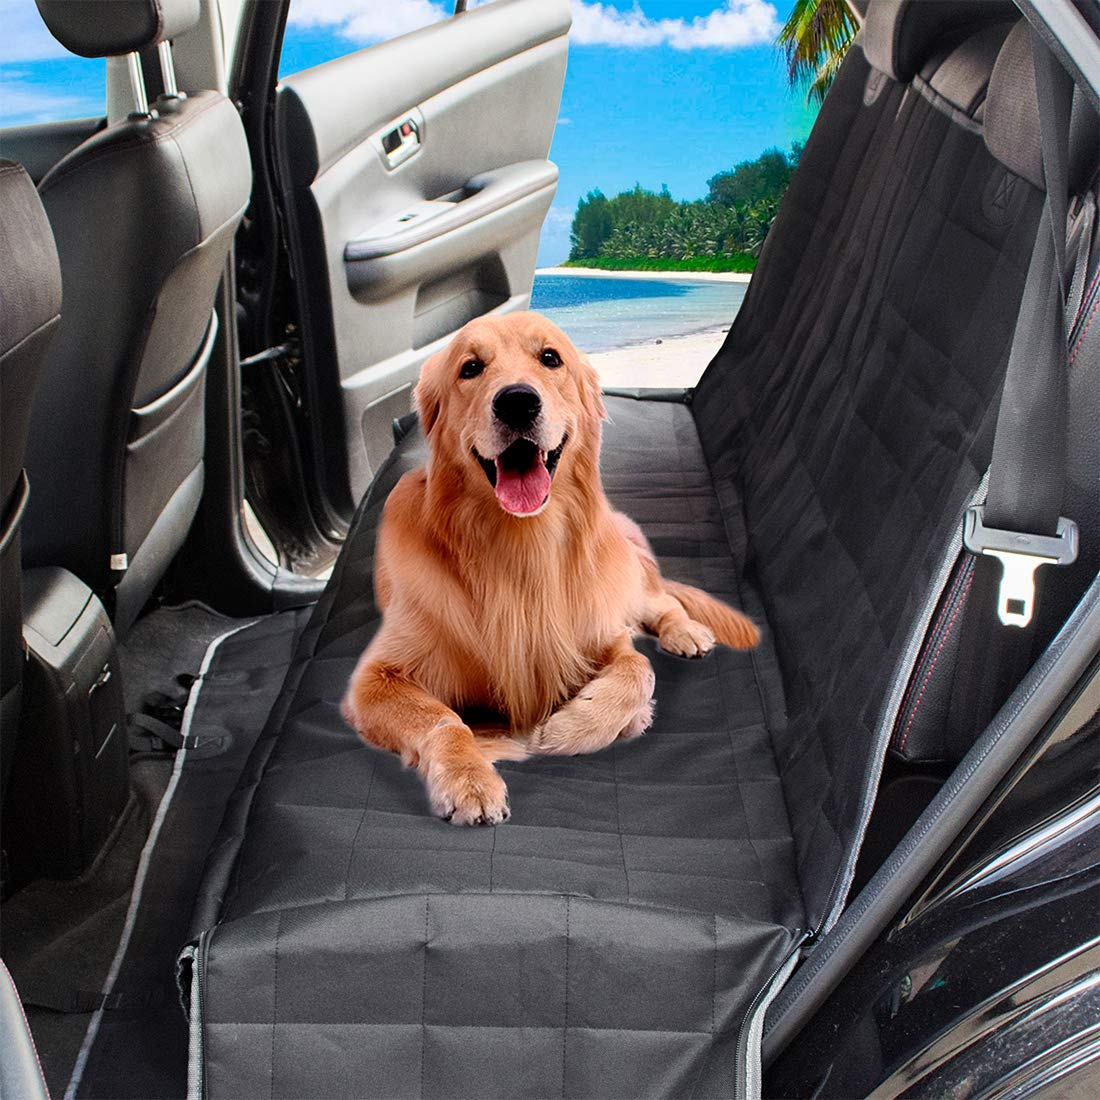 PETSGO Dog Seat Cover Car Seat Cover for Pets - Waterproof & Scratch Proof & Nonslip Backing - Durable & Premium Pet Seat Covers for Cars Trucks and SUVs - Black, Hammock Convertible